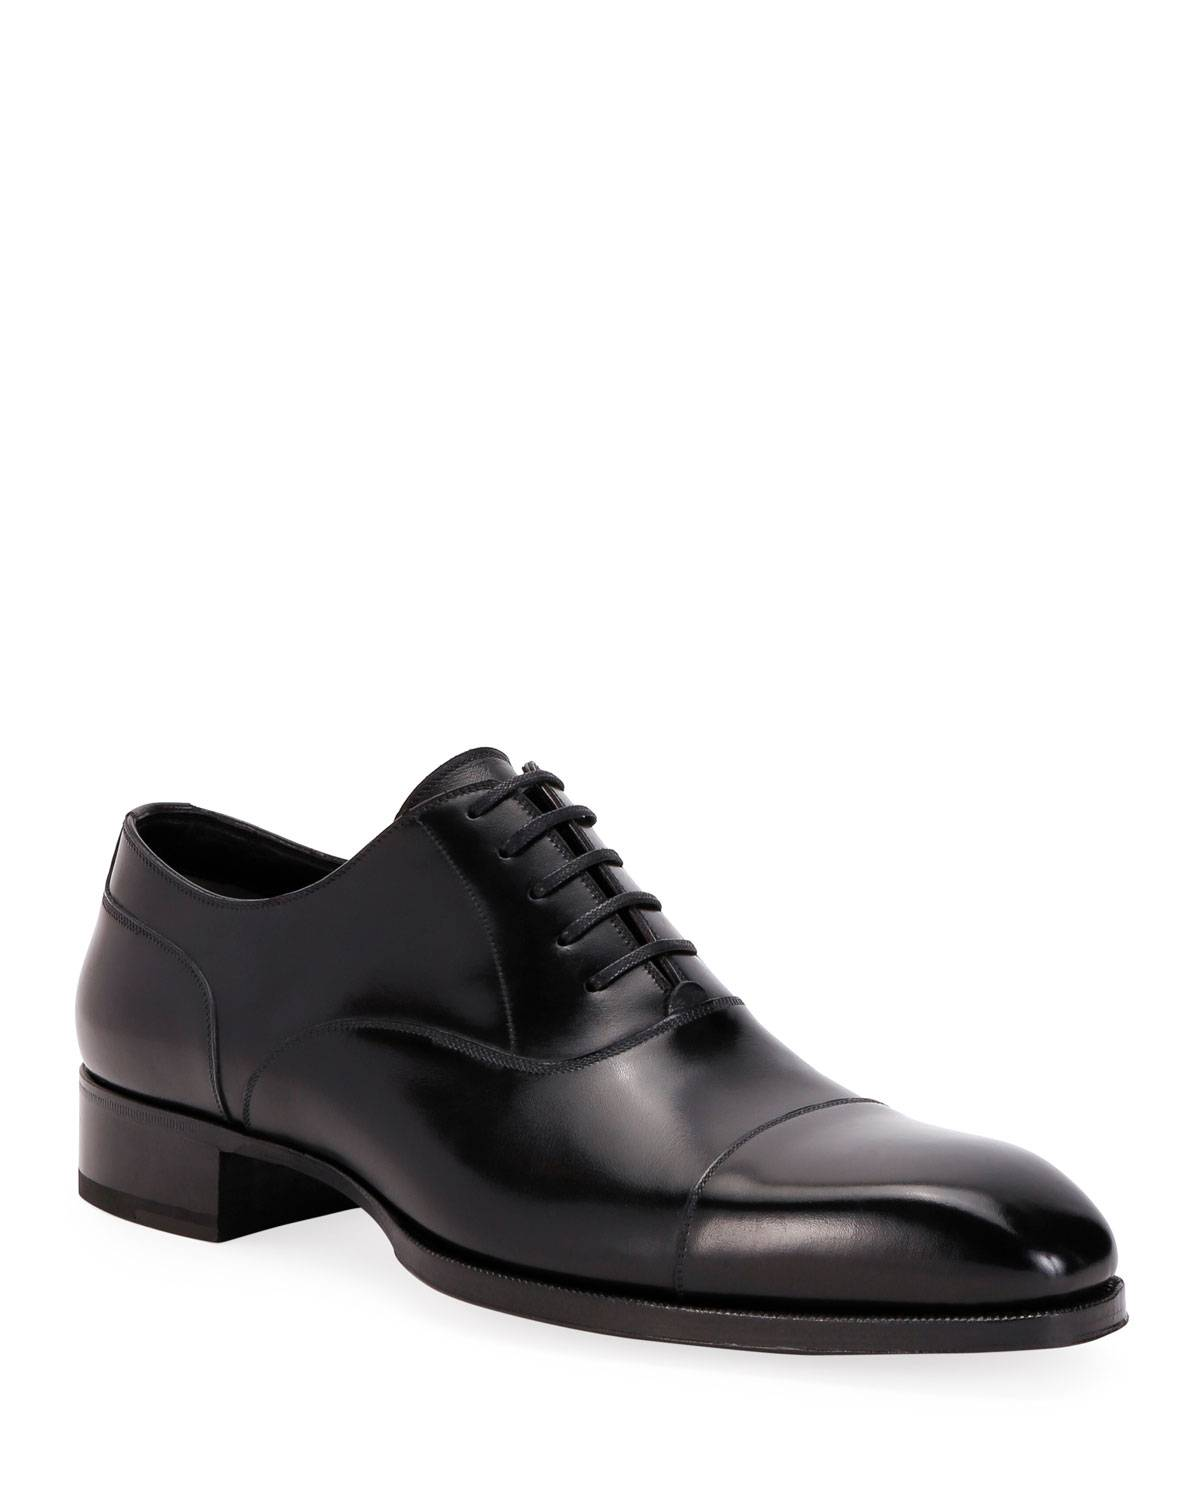 TOM FORD Men's Formal Leather Cap-Toe Oxford Shoes - Size: 8 UK (9D US)